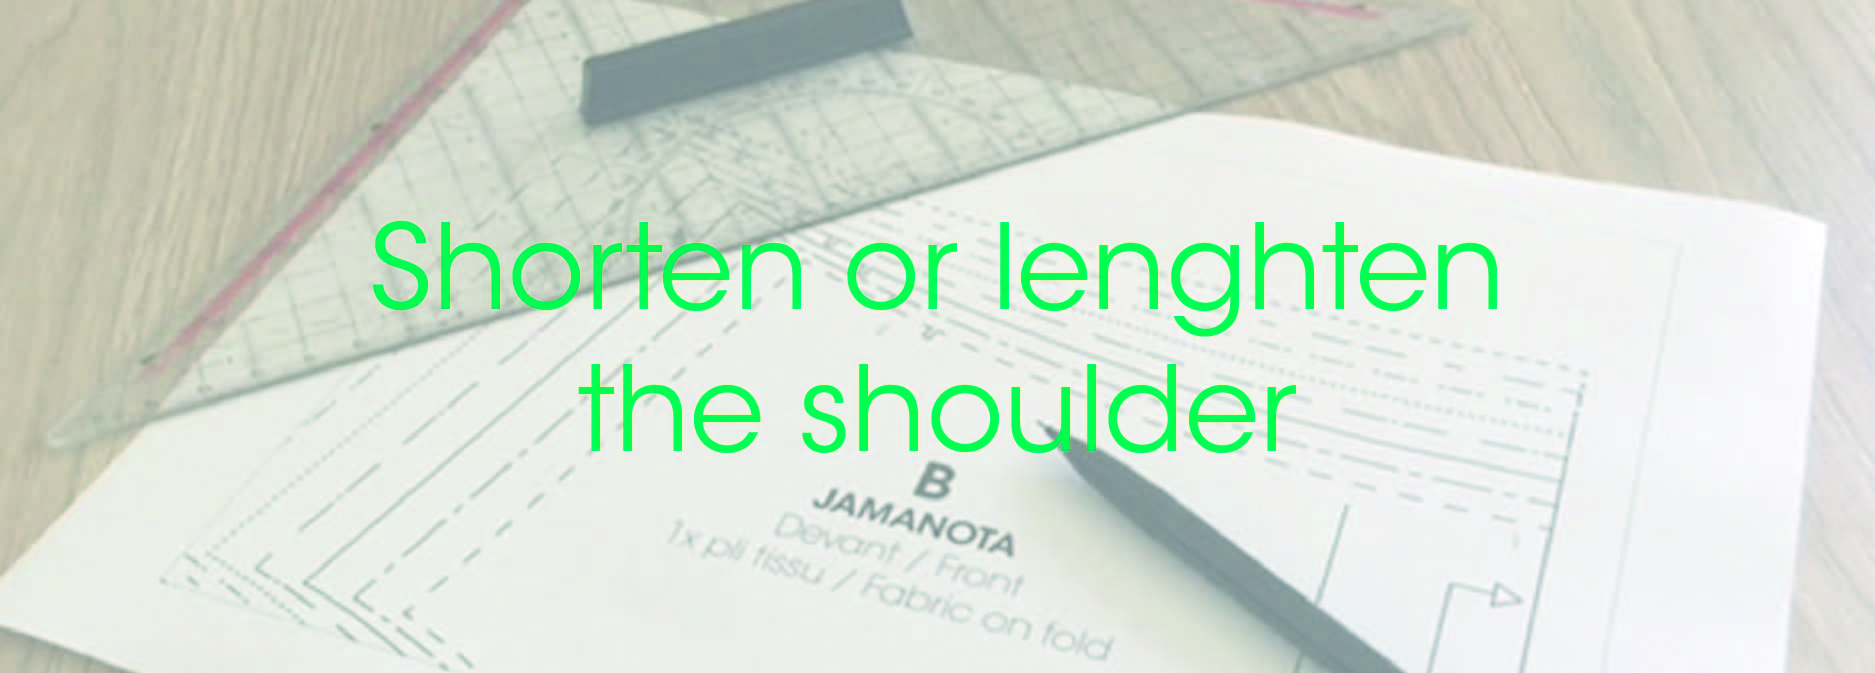 Pattern_making_shorten_or_lengthen_a_shoulder